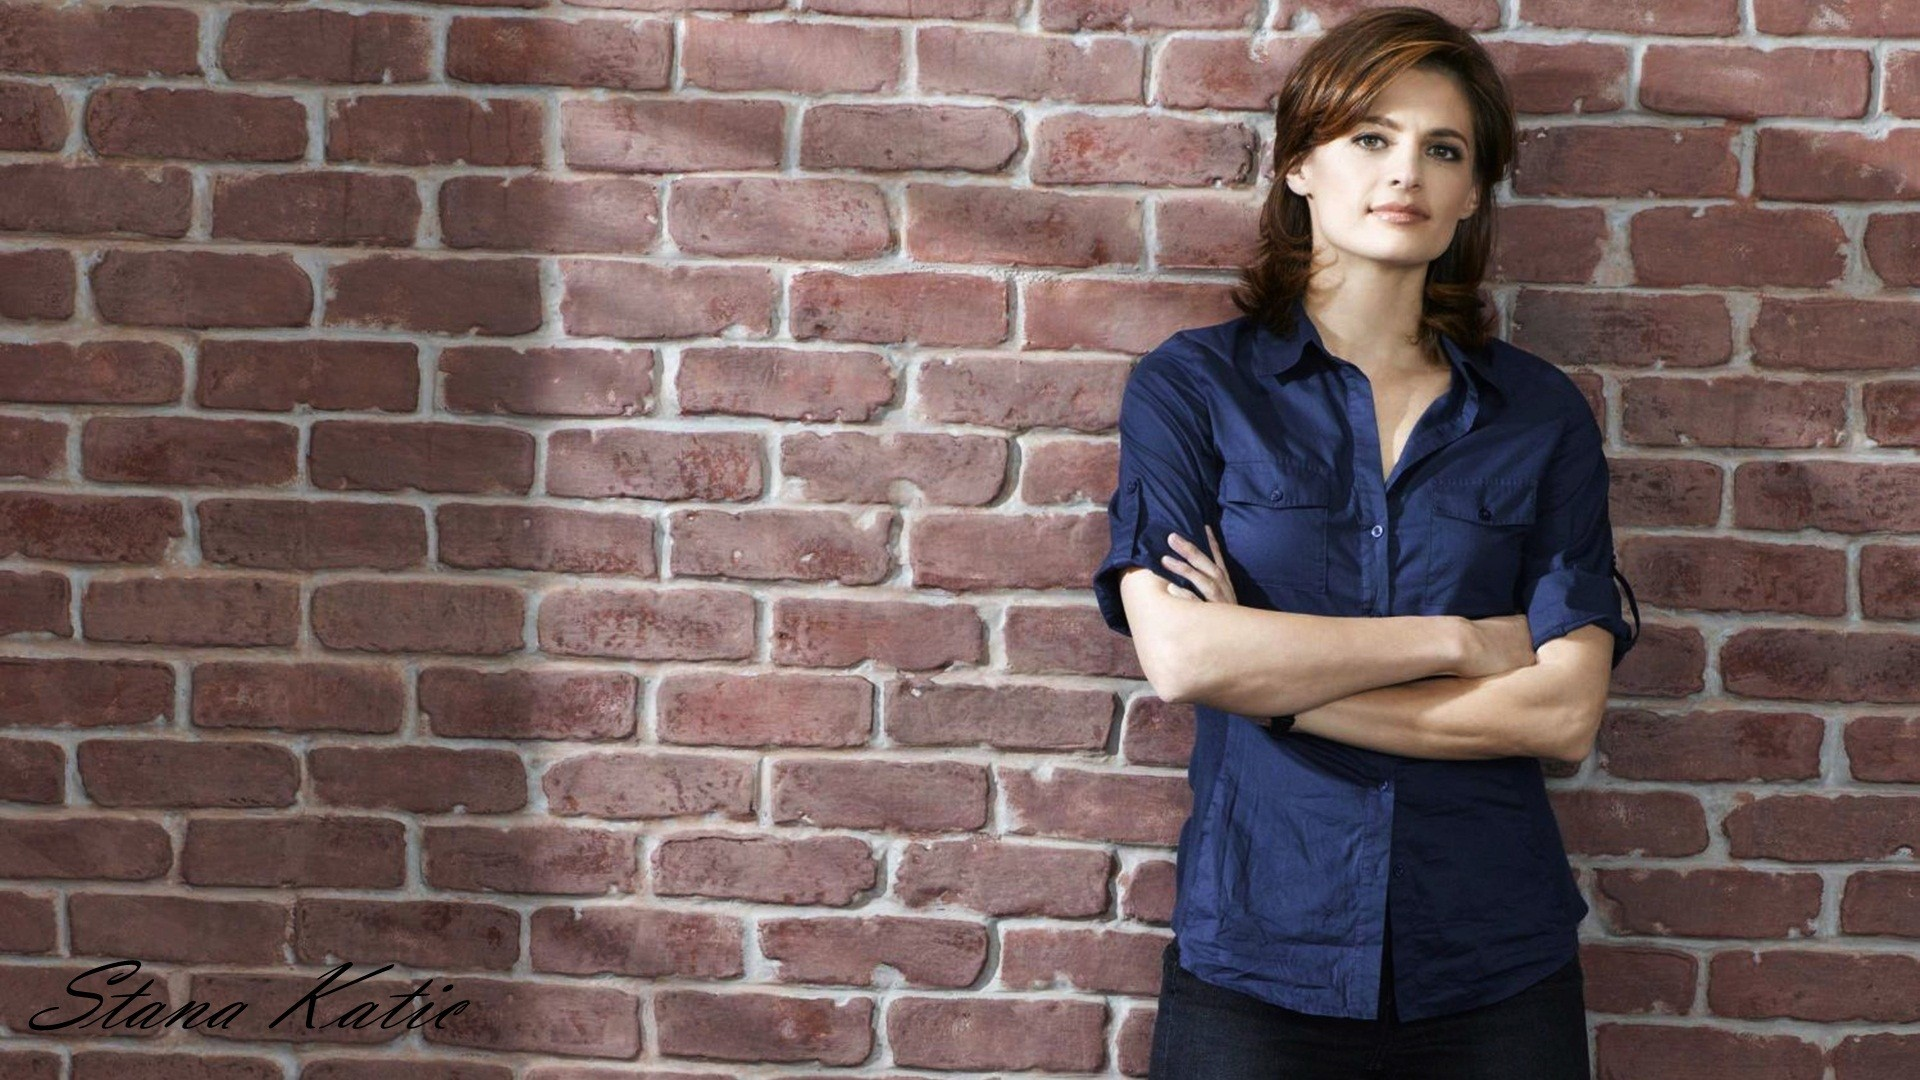 1920x1080 Latest Stana Katic HD Wallpaper